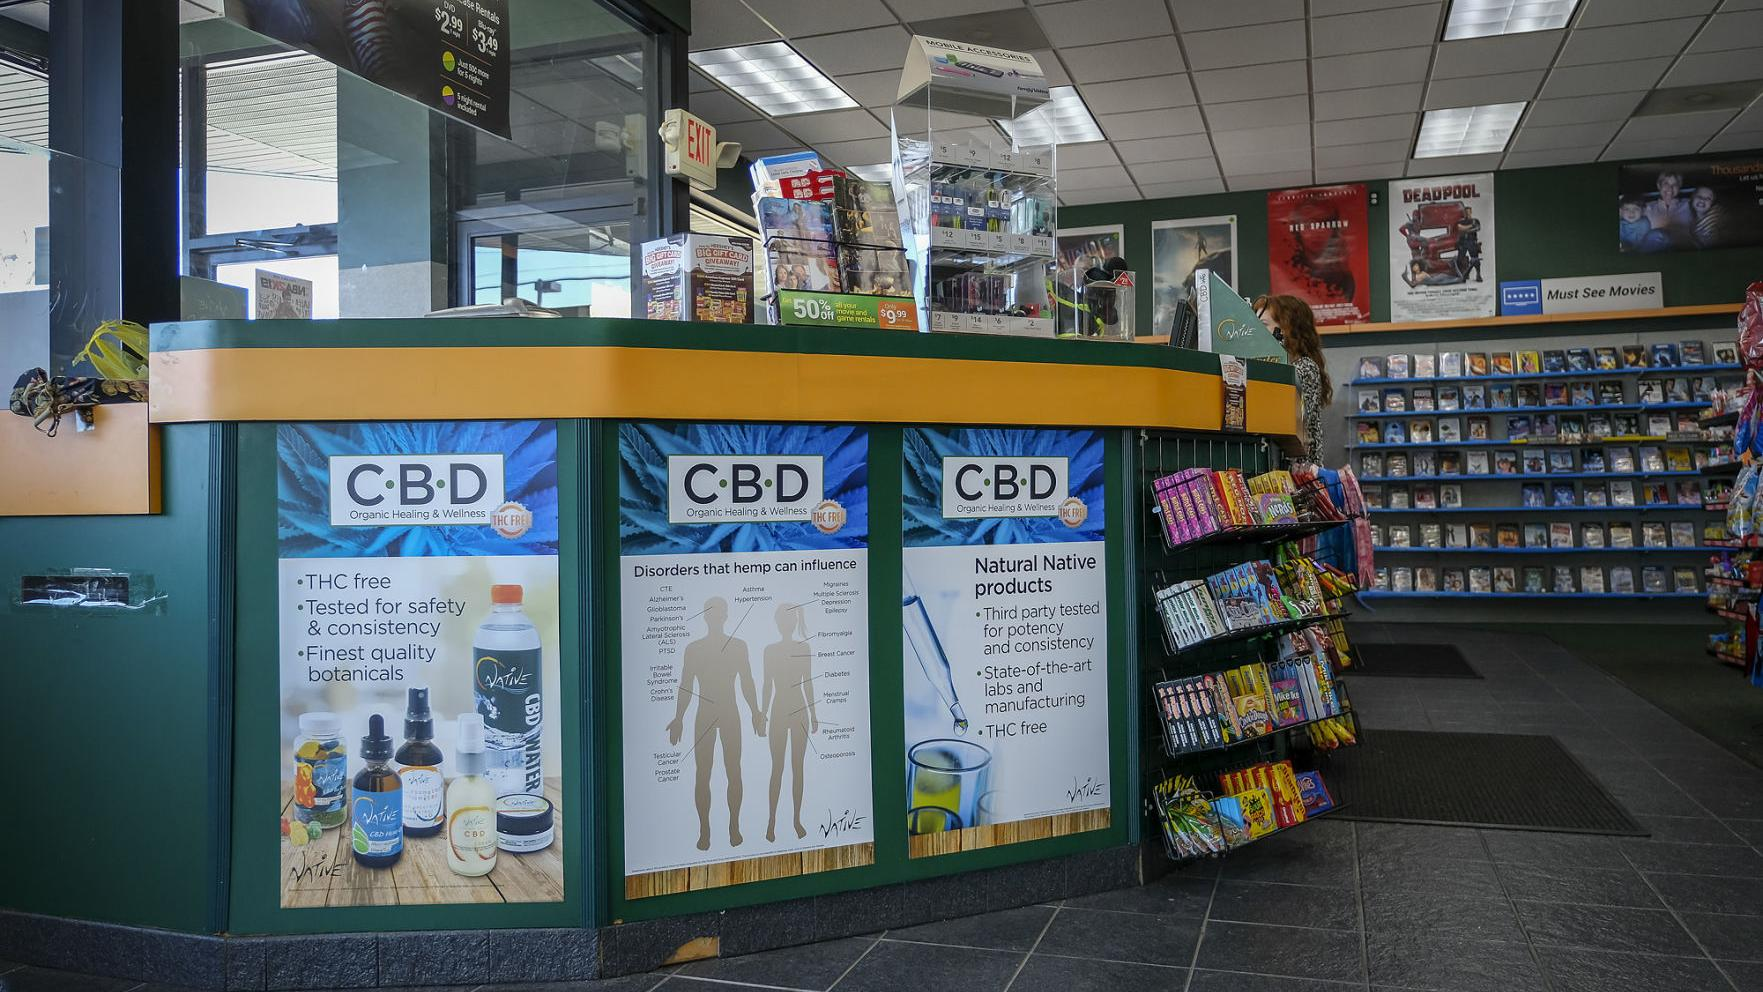 Pain buster or placebo? CBD oil craze hits Southern Illinois - The Southern thumbnail